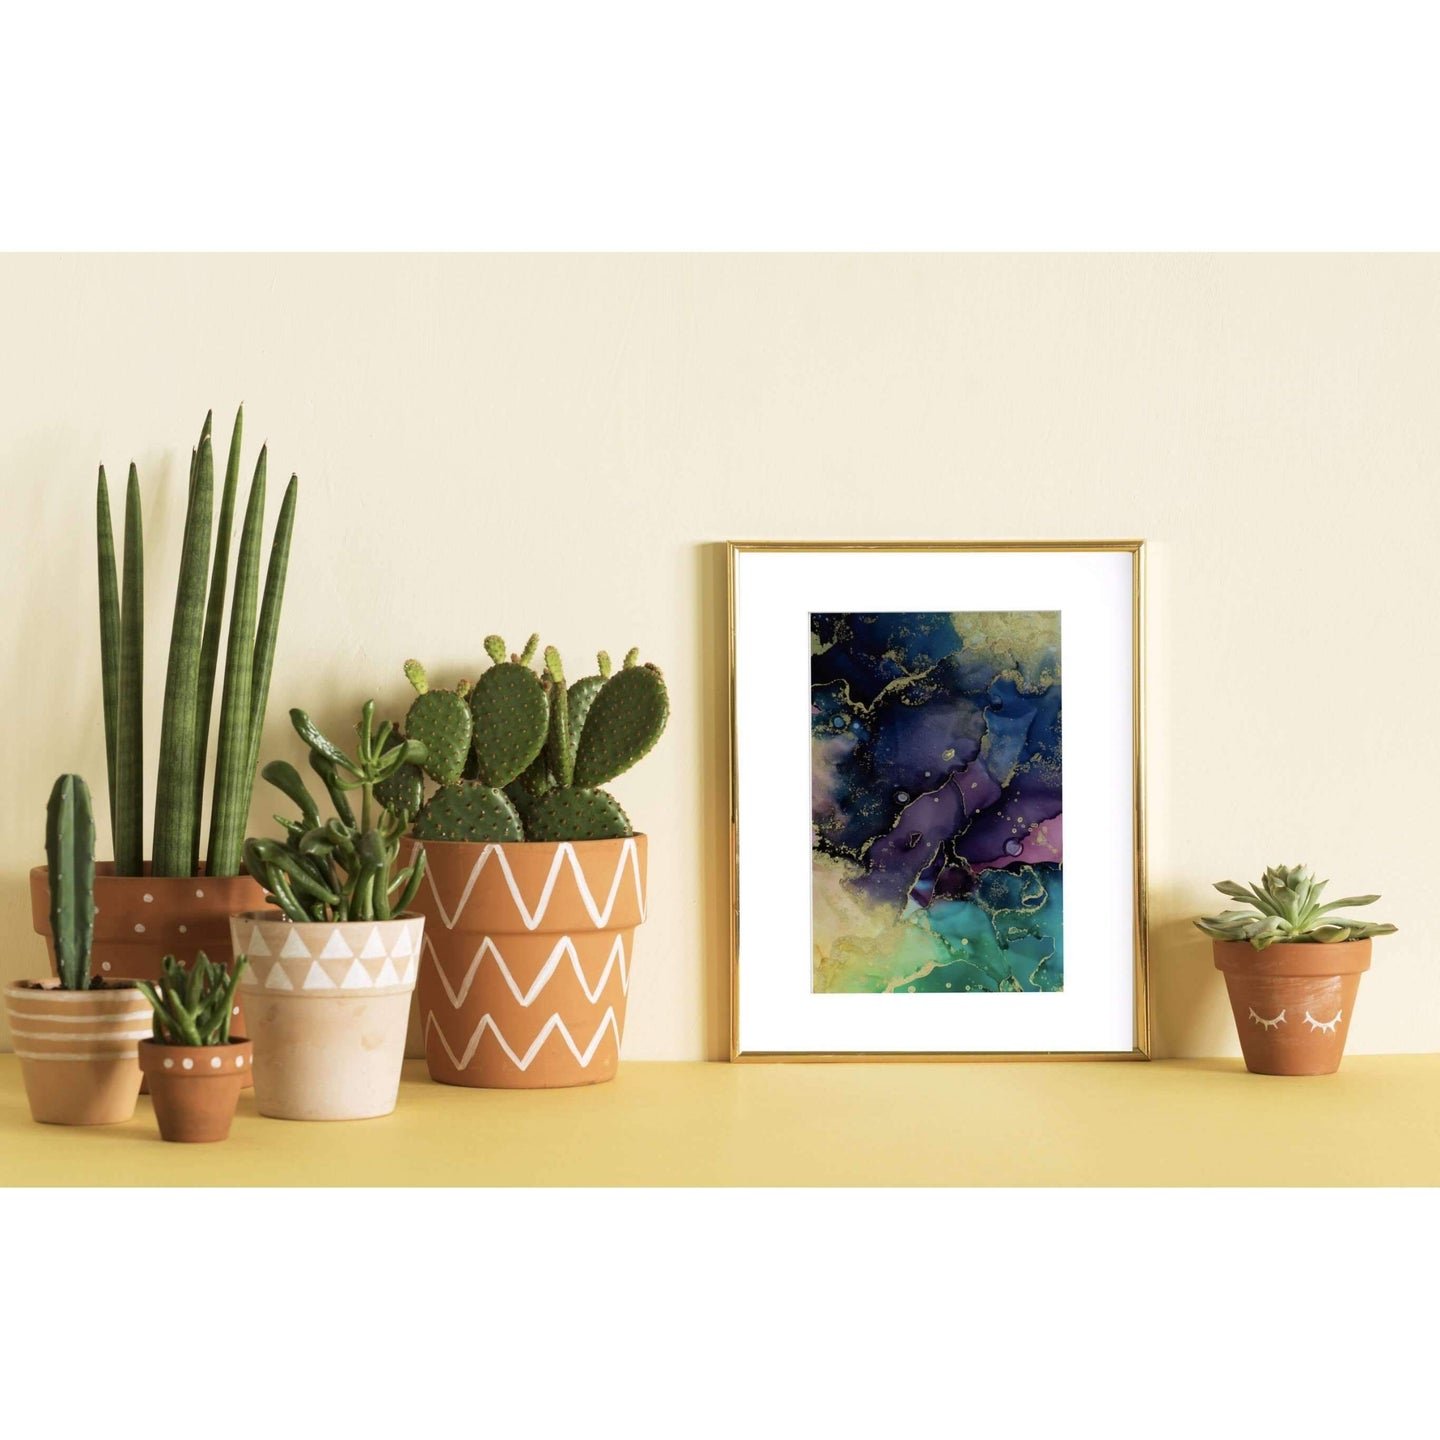 Alcohol Ink Wall Art on Yupo Paper Dark Clouds